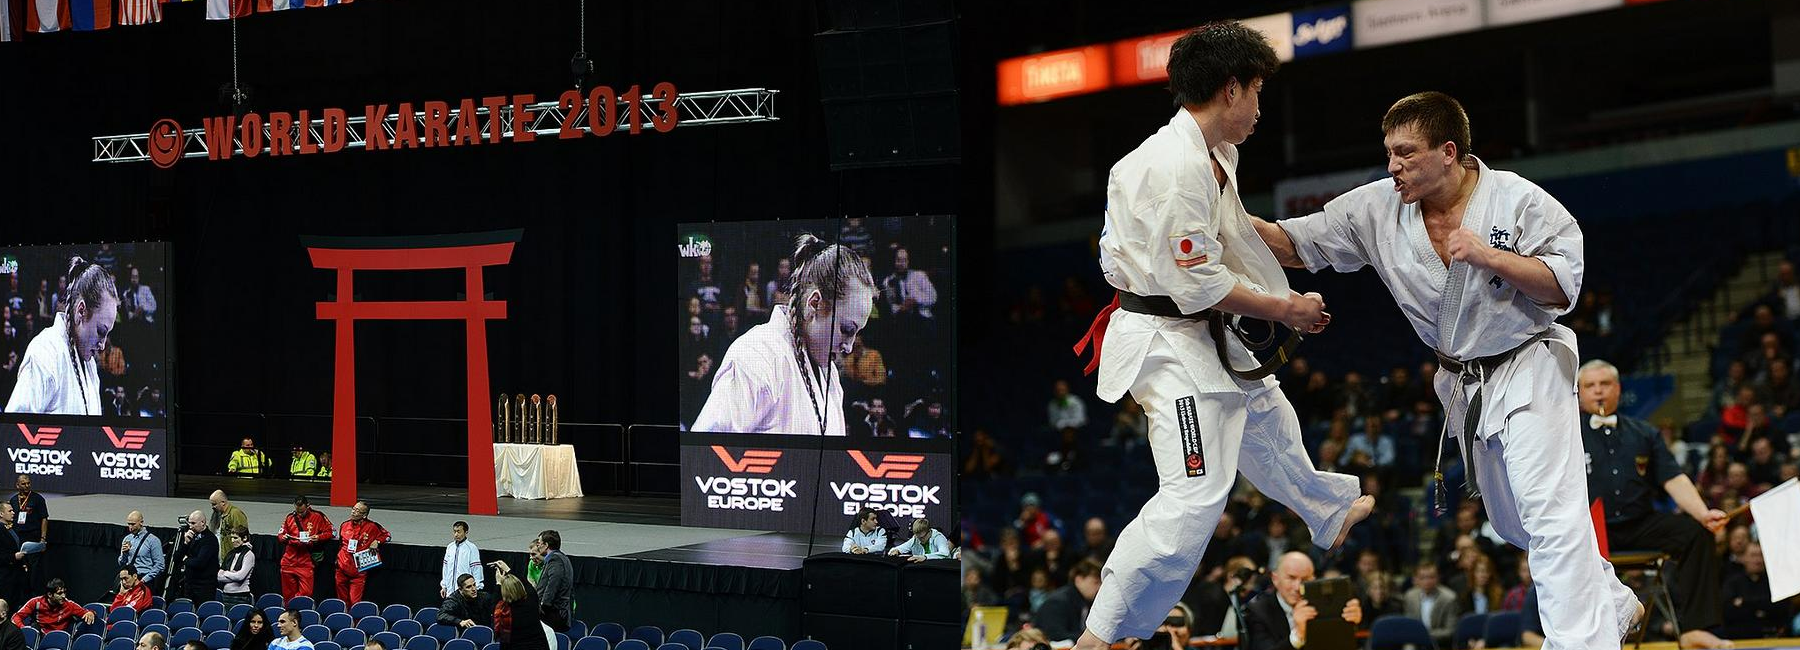 karate vostok europe